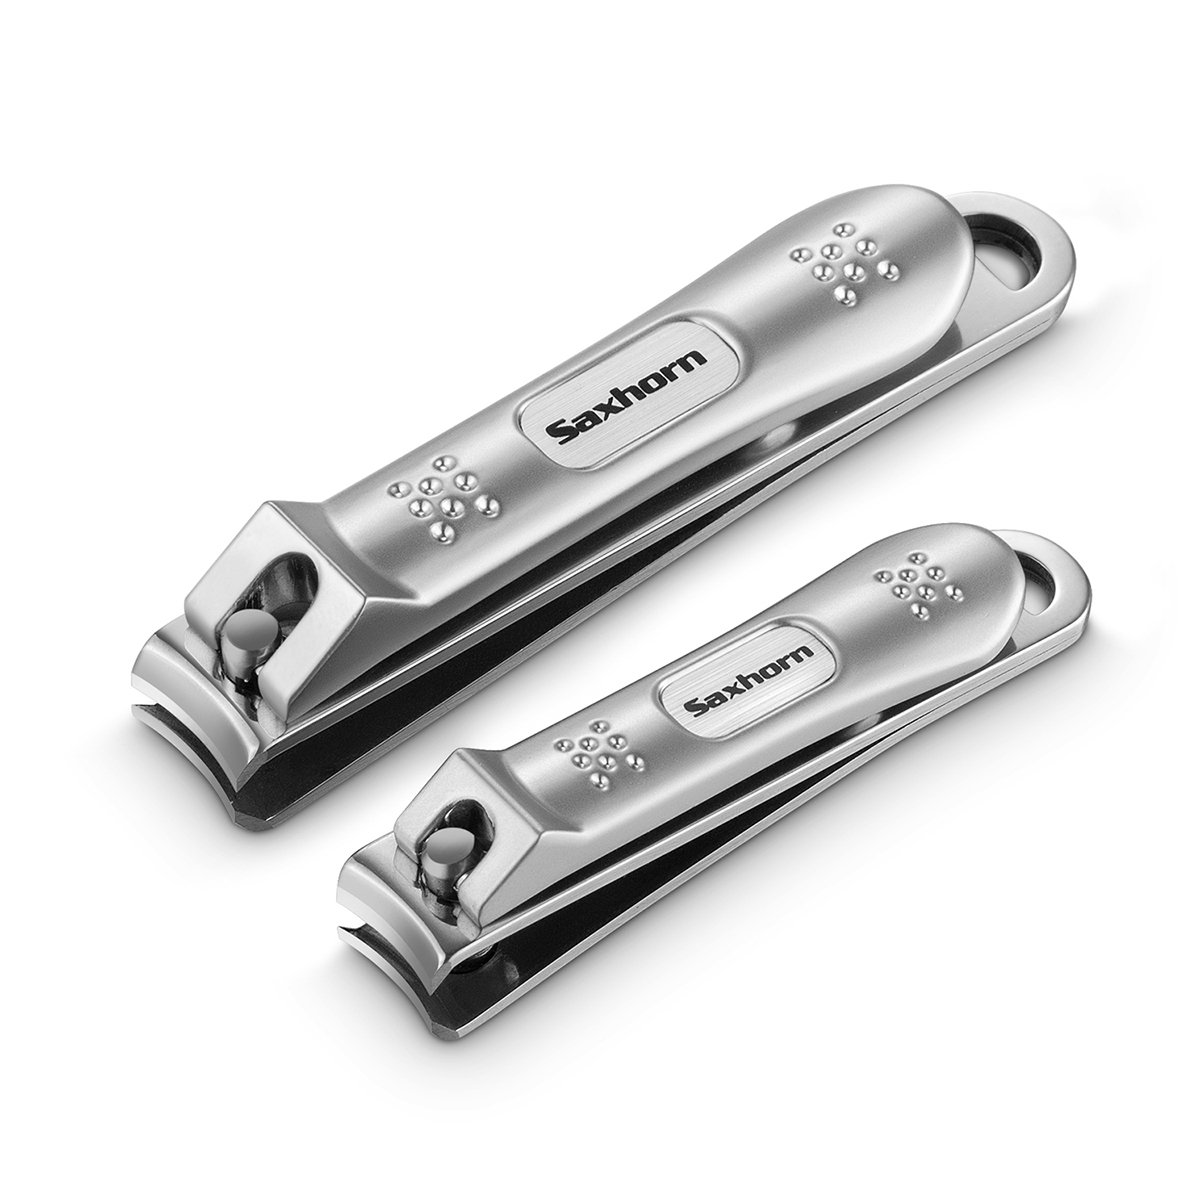 Amazon.com : Nail Clippers, Saxhorn Nail Cutter and Trimmer for ...